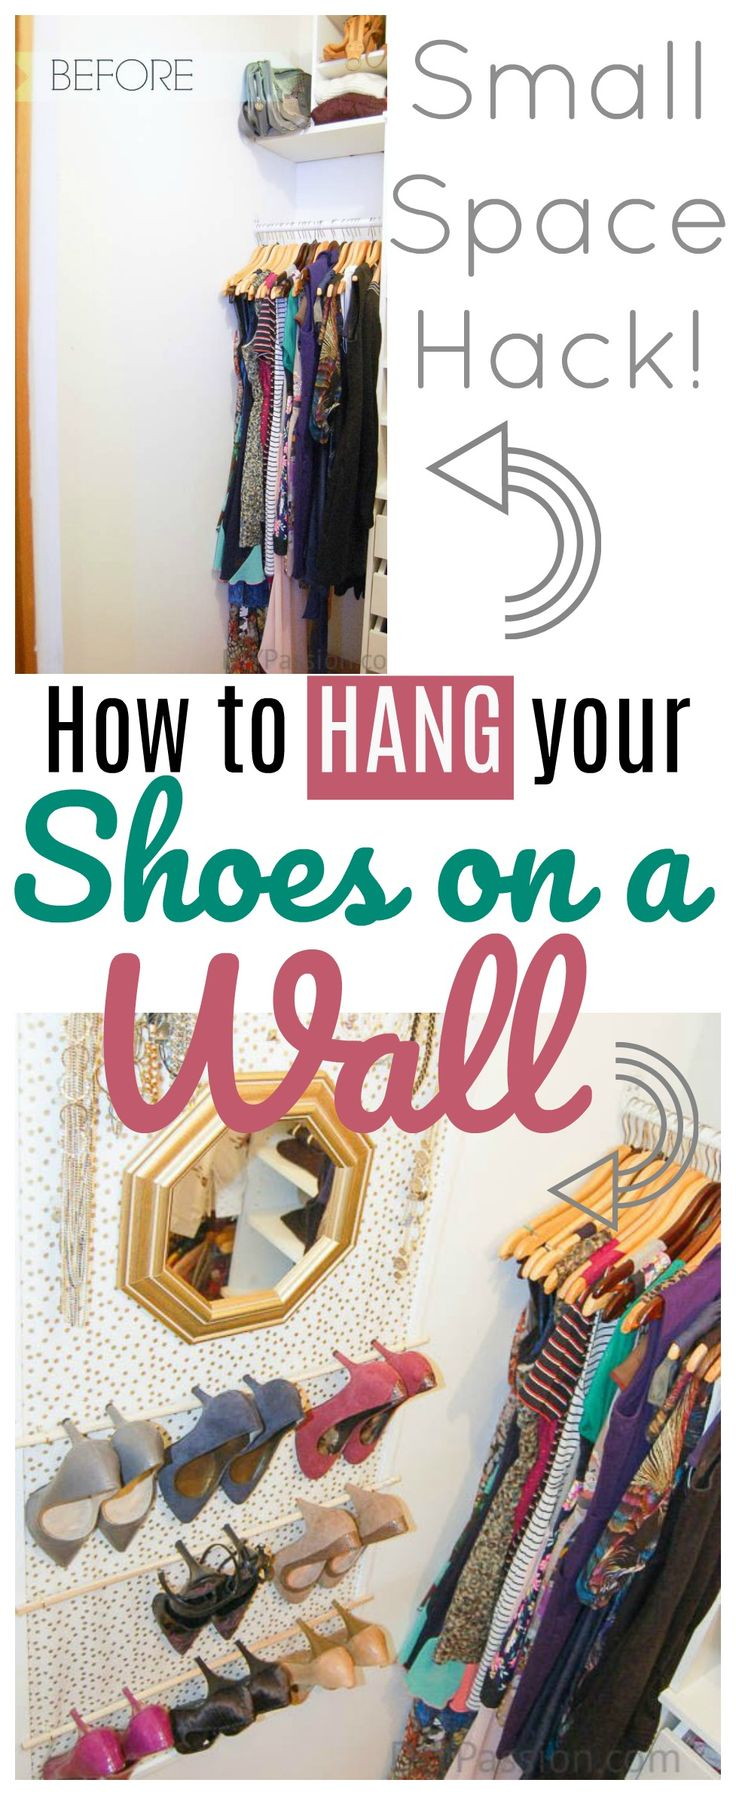 how to hang your shoes on the wall shoe hangershoes space